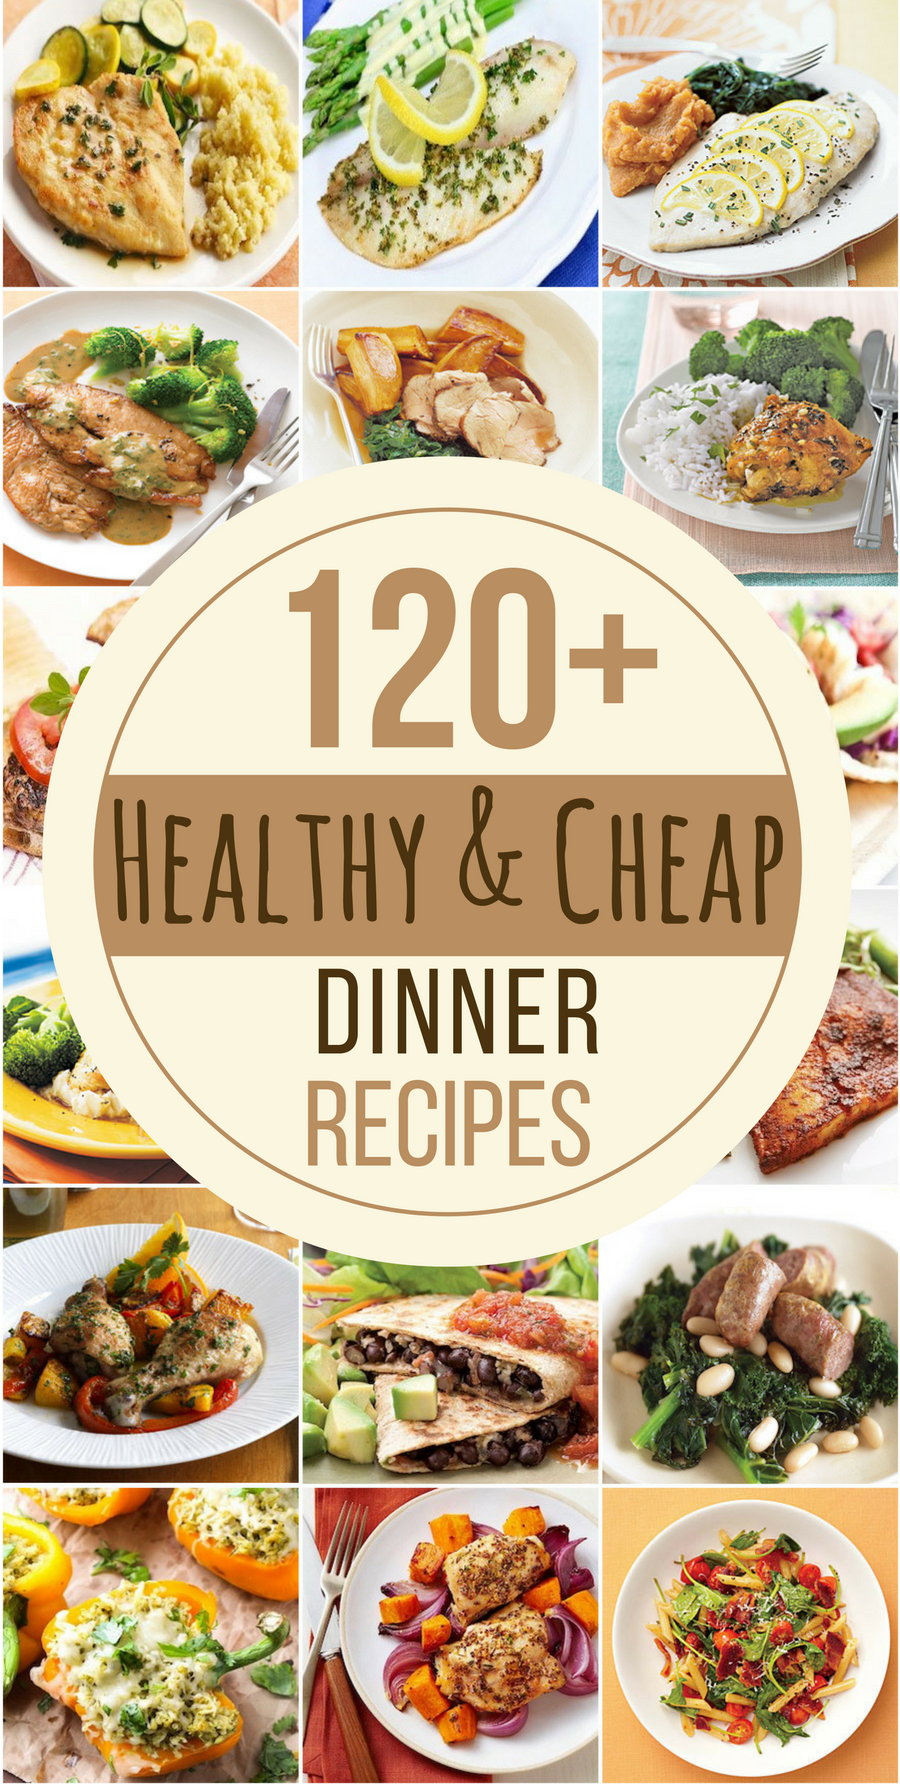 120 healthy and cheap dinner recipes prudent penny pincher